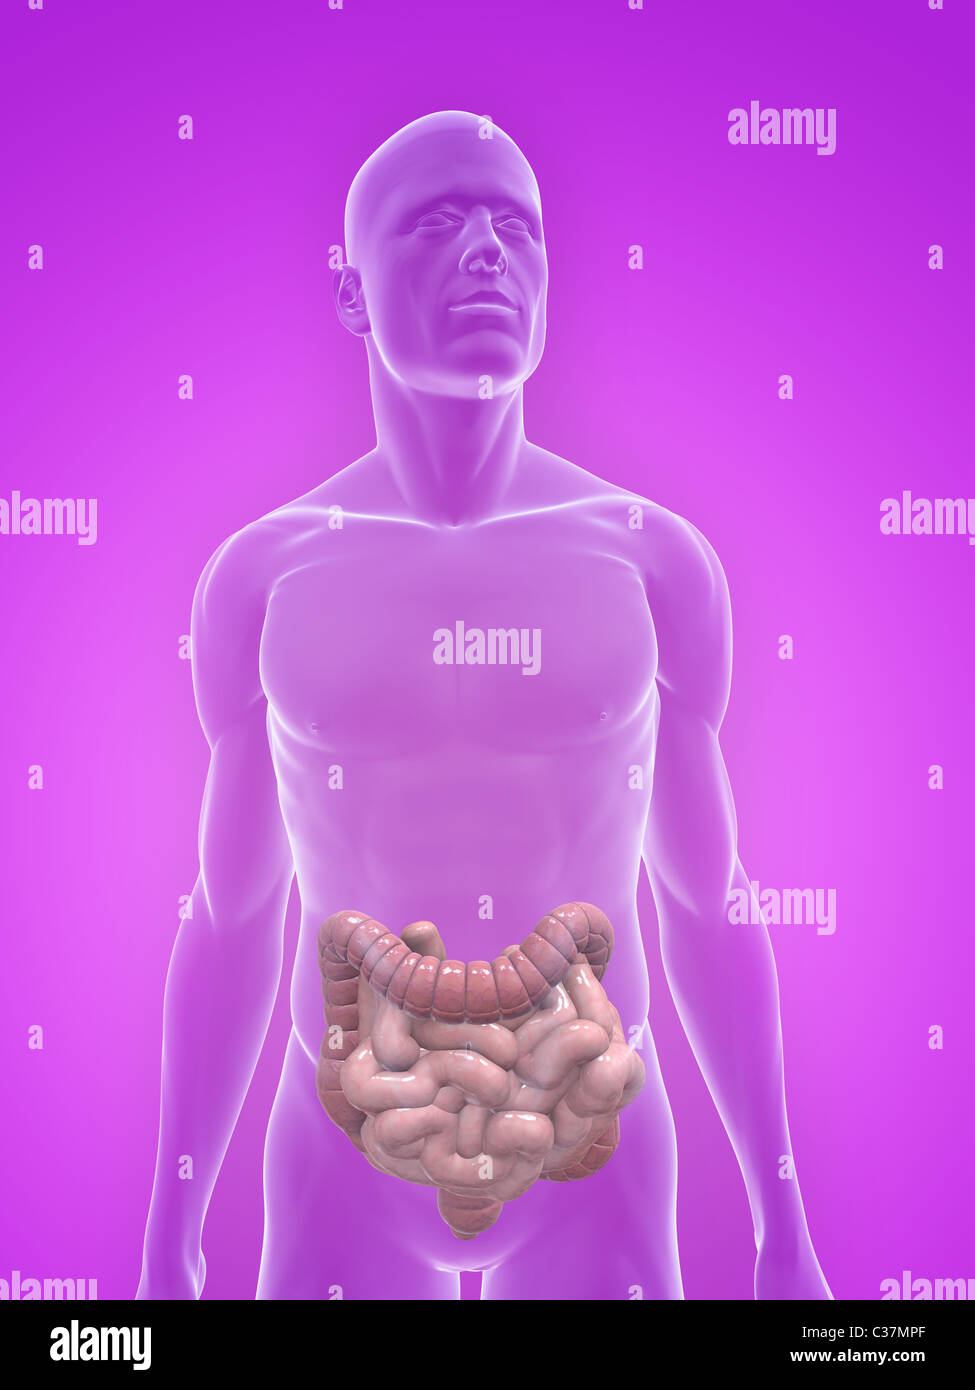 Human Small Intestines And Colon Stock Photo Royalty Free Image